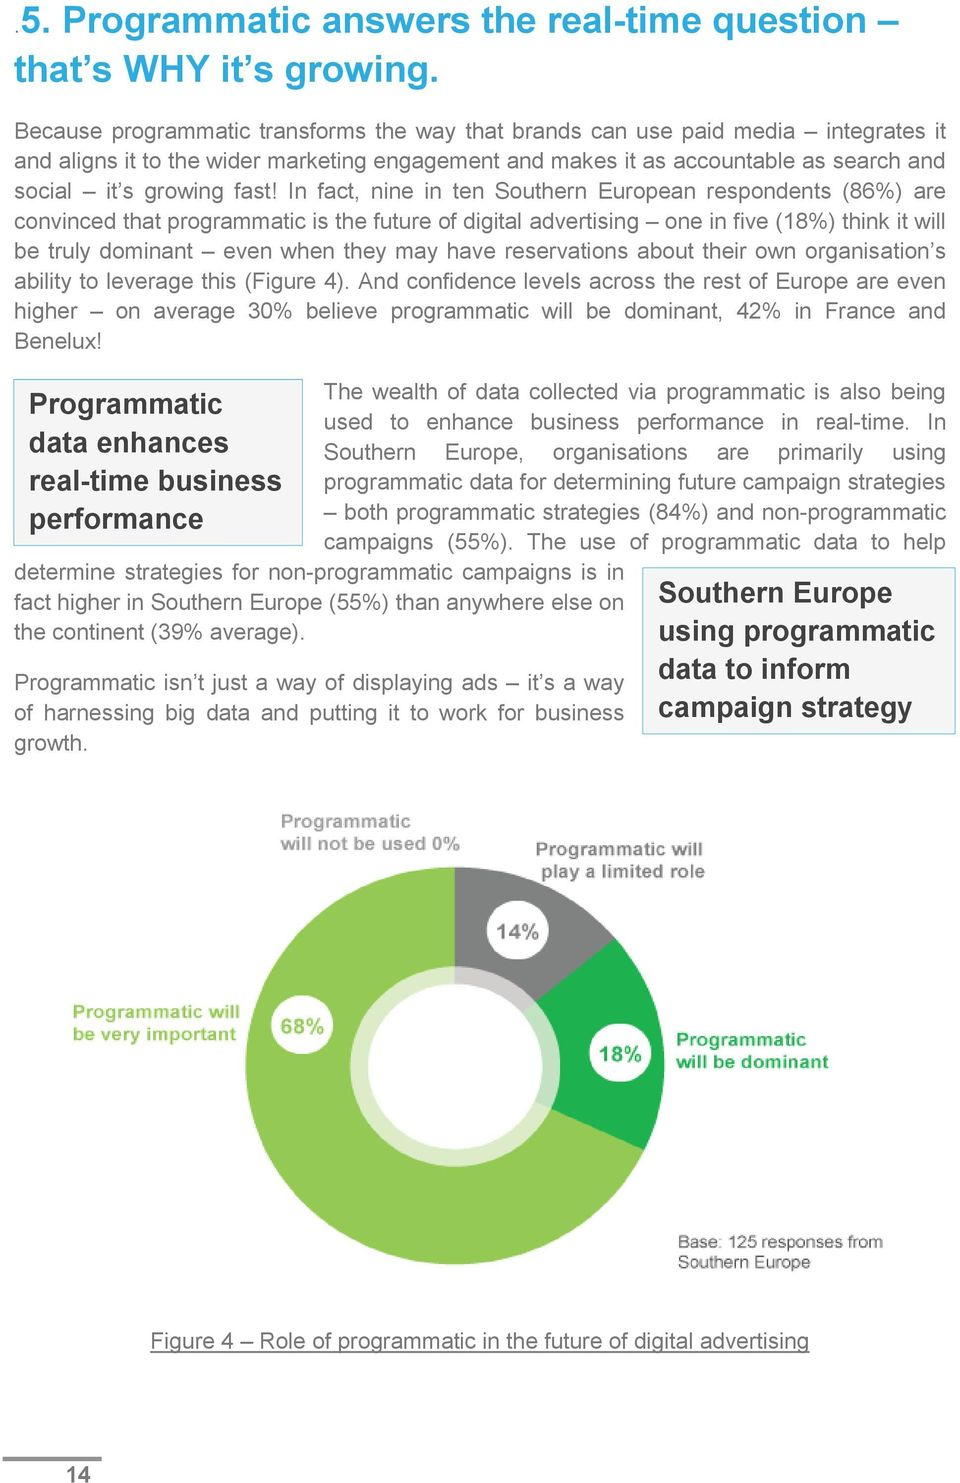 In fact, nine in ten Southern European respondents (86%) are convinced that programmatic is the future of digital advertising one in five (18%) think it will be truly dominant even when they may have